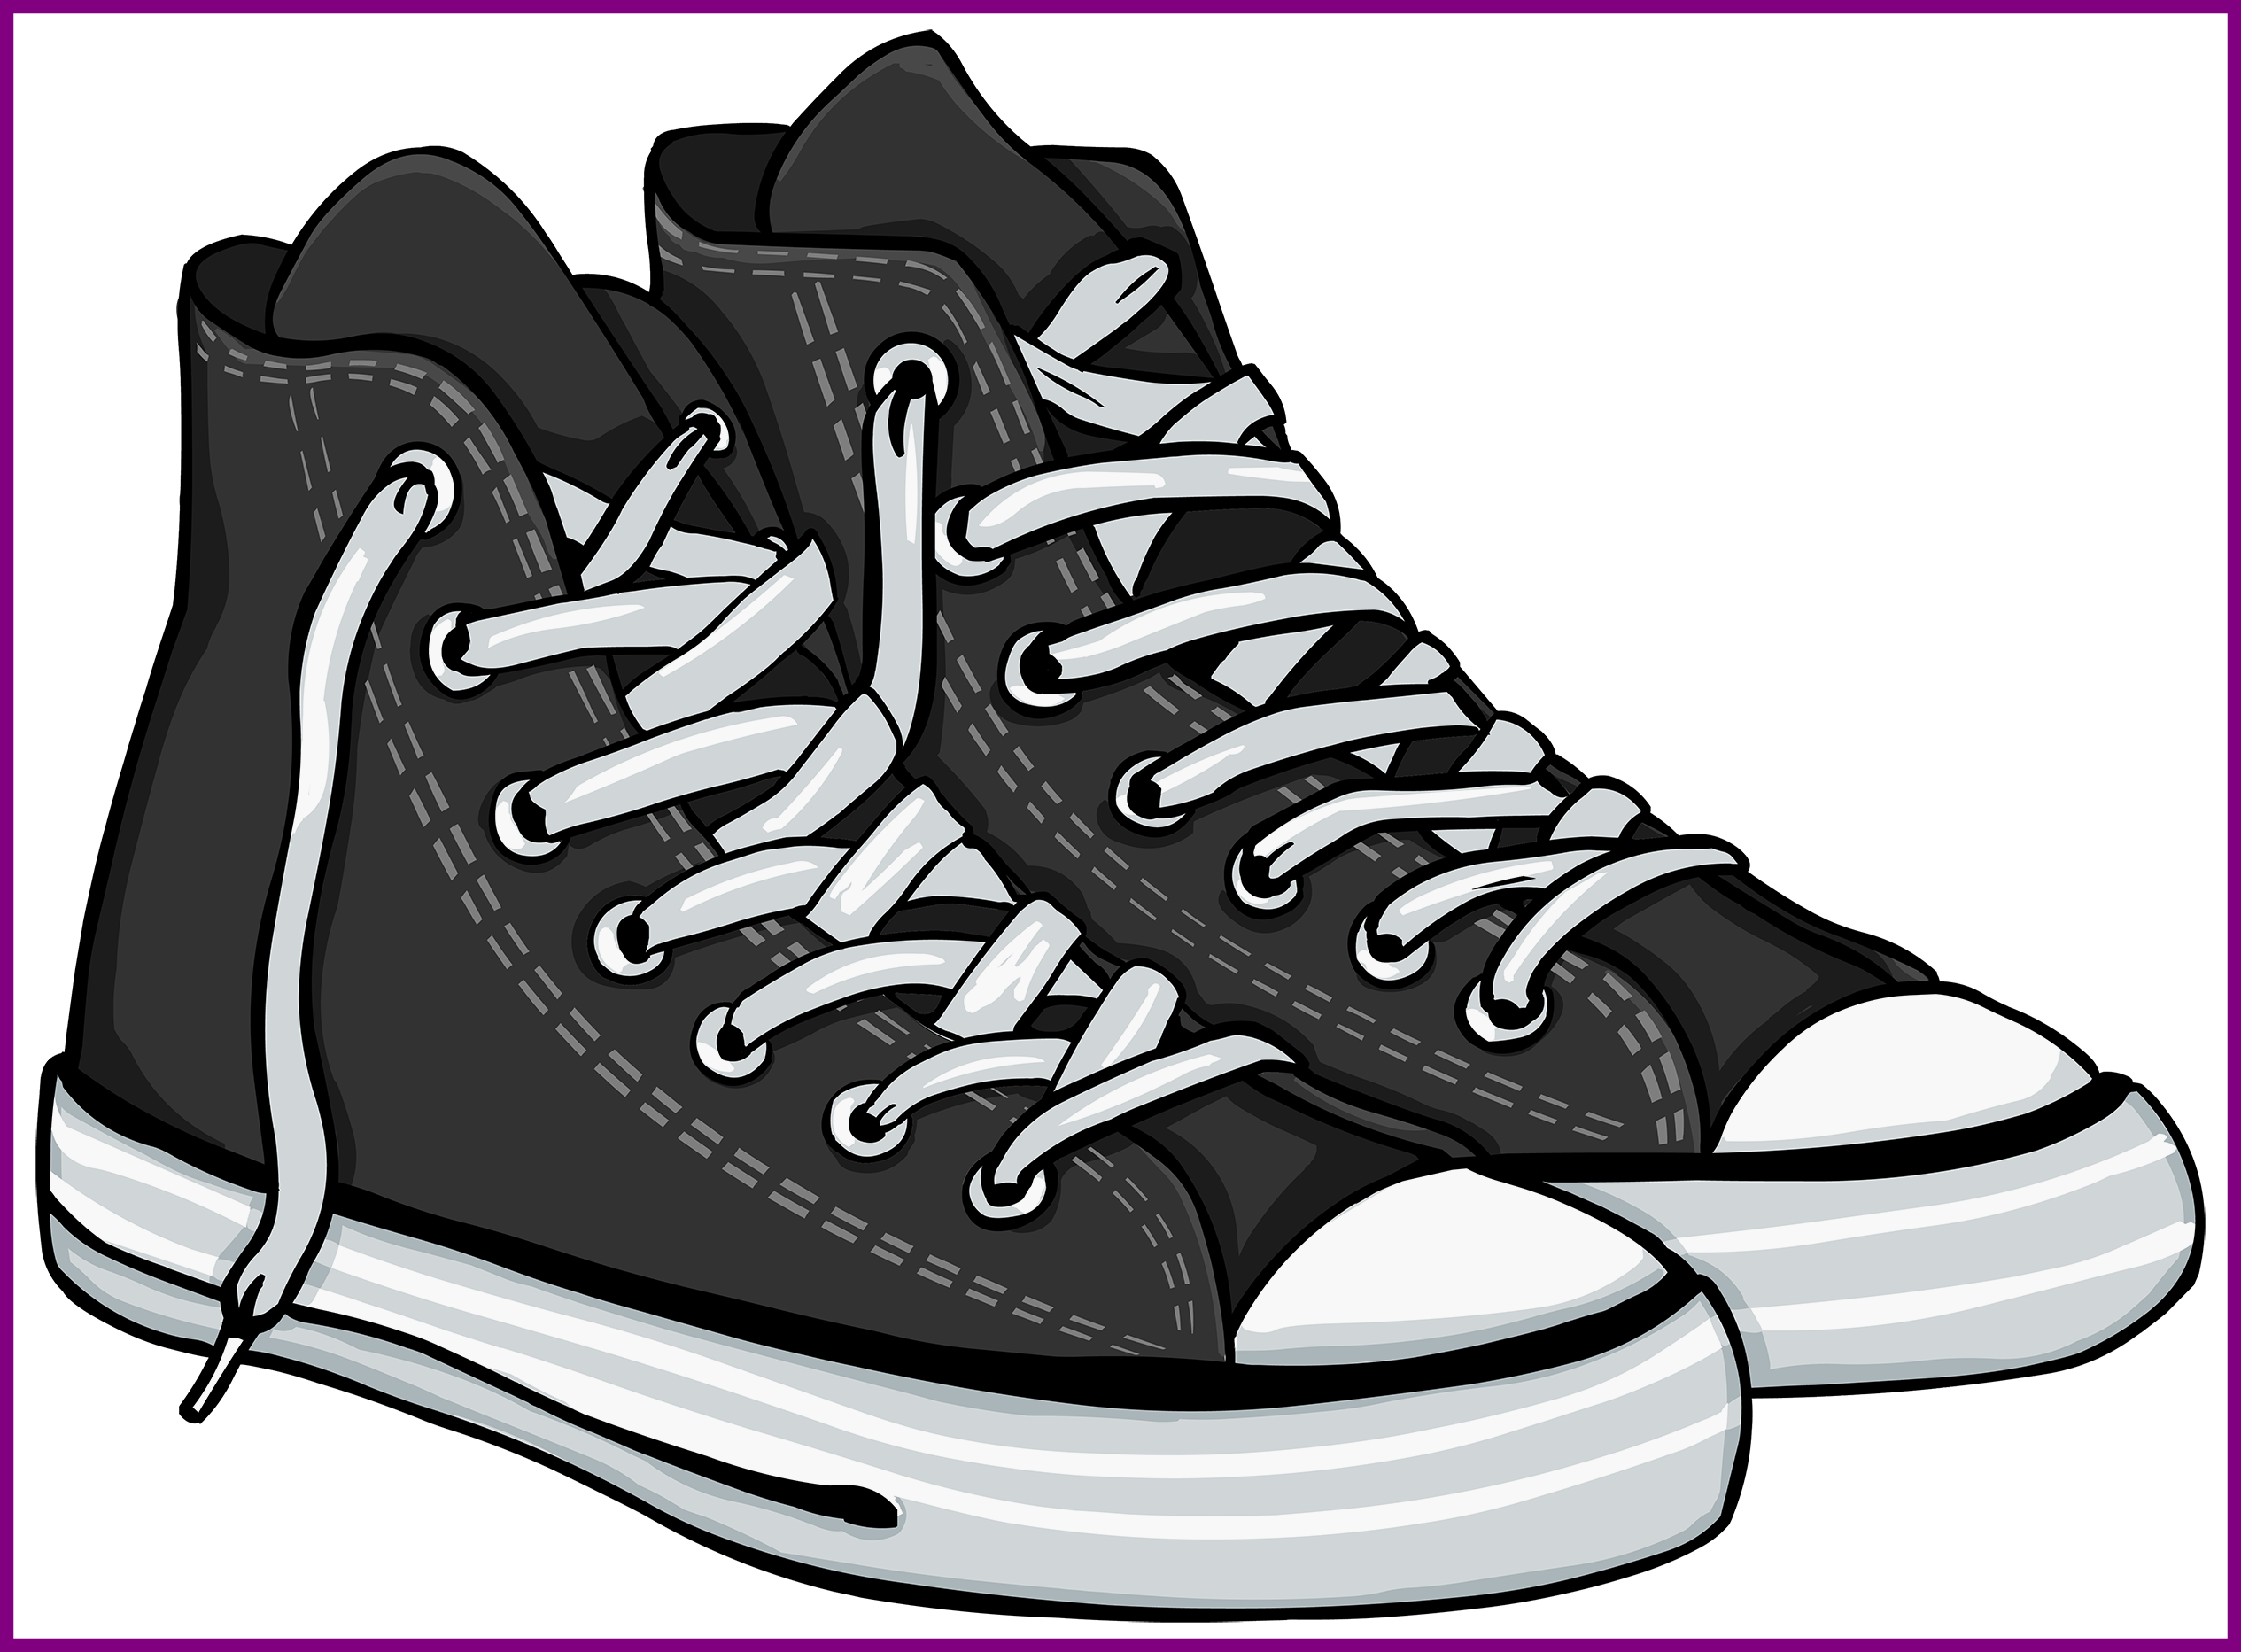 clip art freeuse Basketball shoes black and white clipart